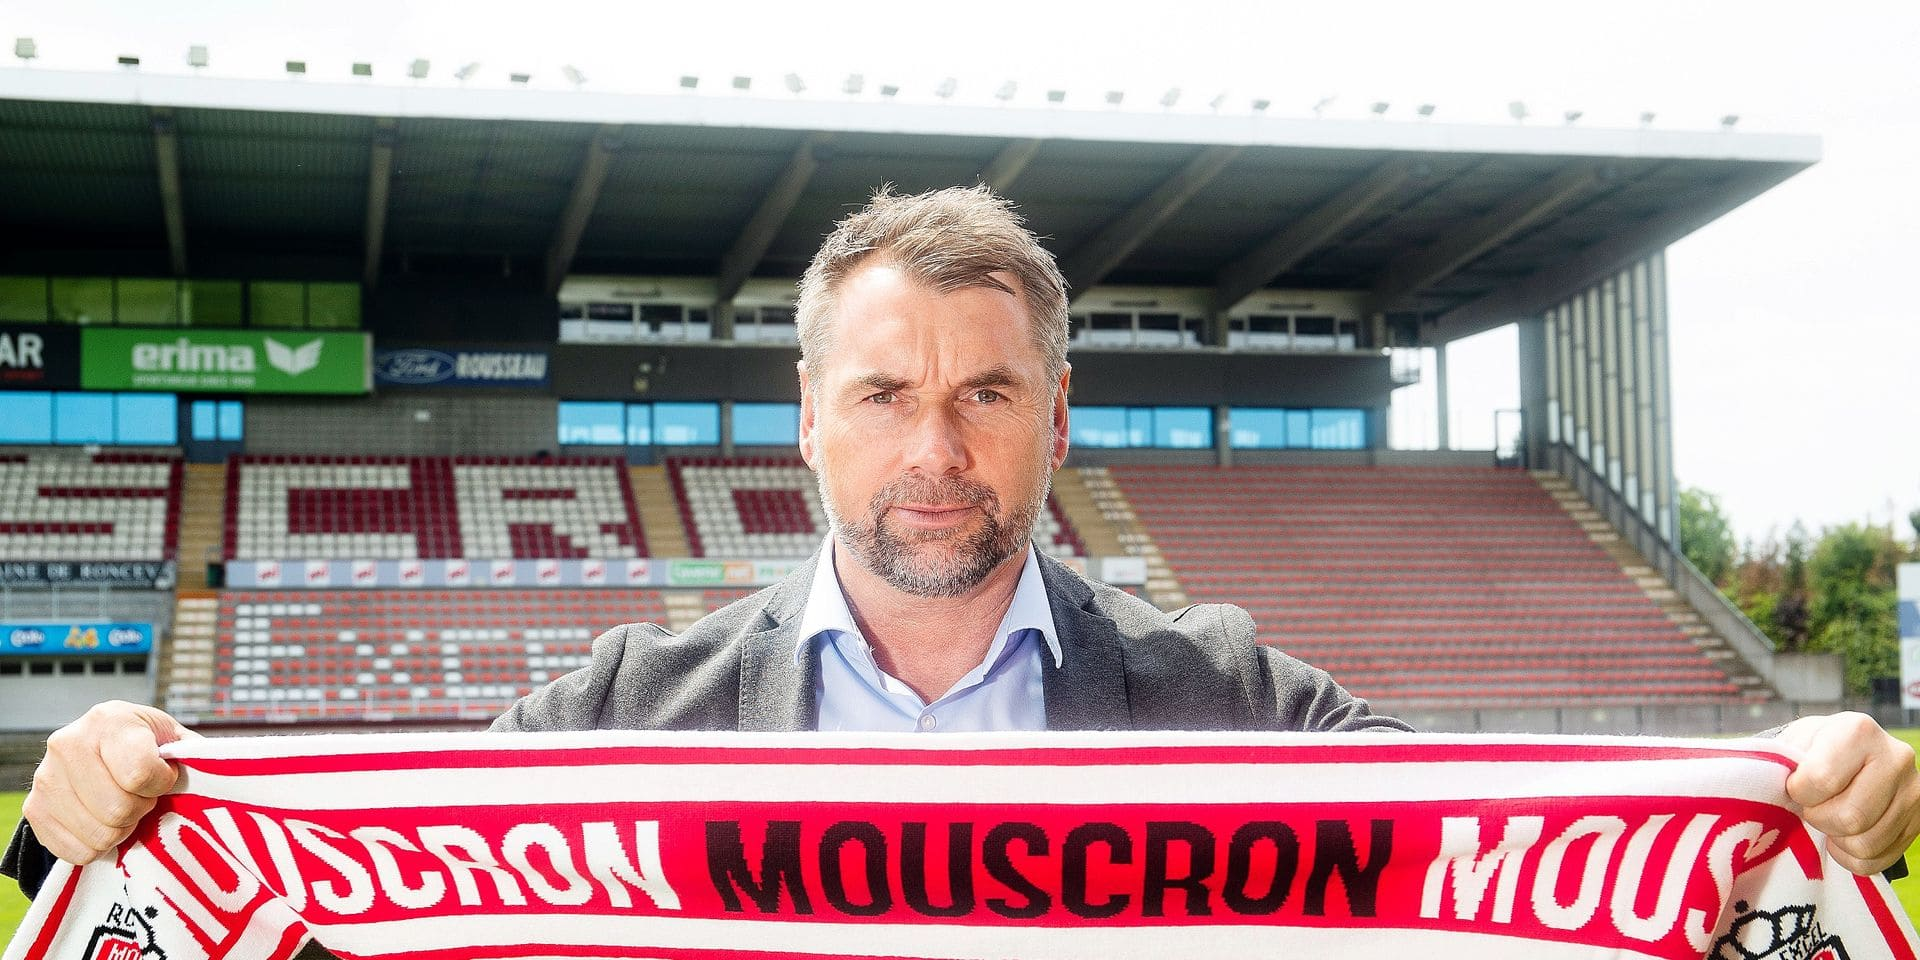 Mouscron's new head coach German Bernd Hollerbach poses for the photographer during a press conference of Royal Excel Mouscron to present their new coach, Thursday 23 May 2019 in Mouscron. BELGA PHOTO BRUNO FAHY